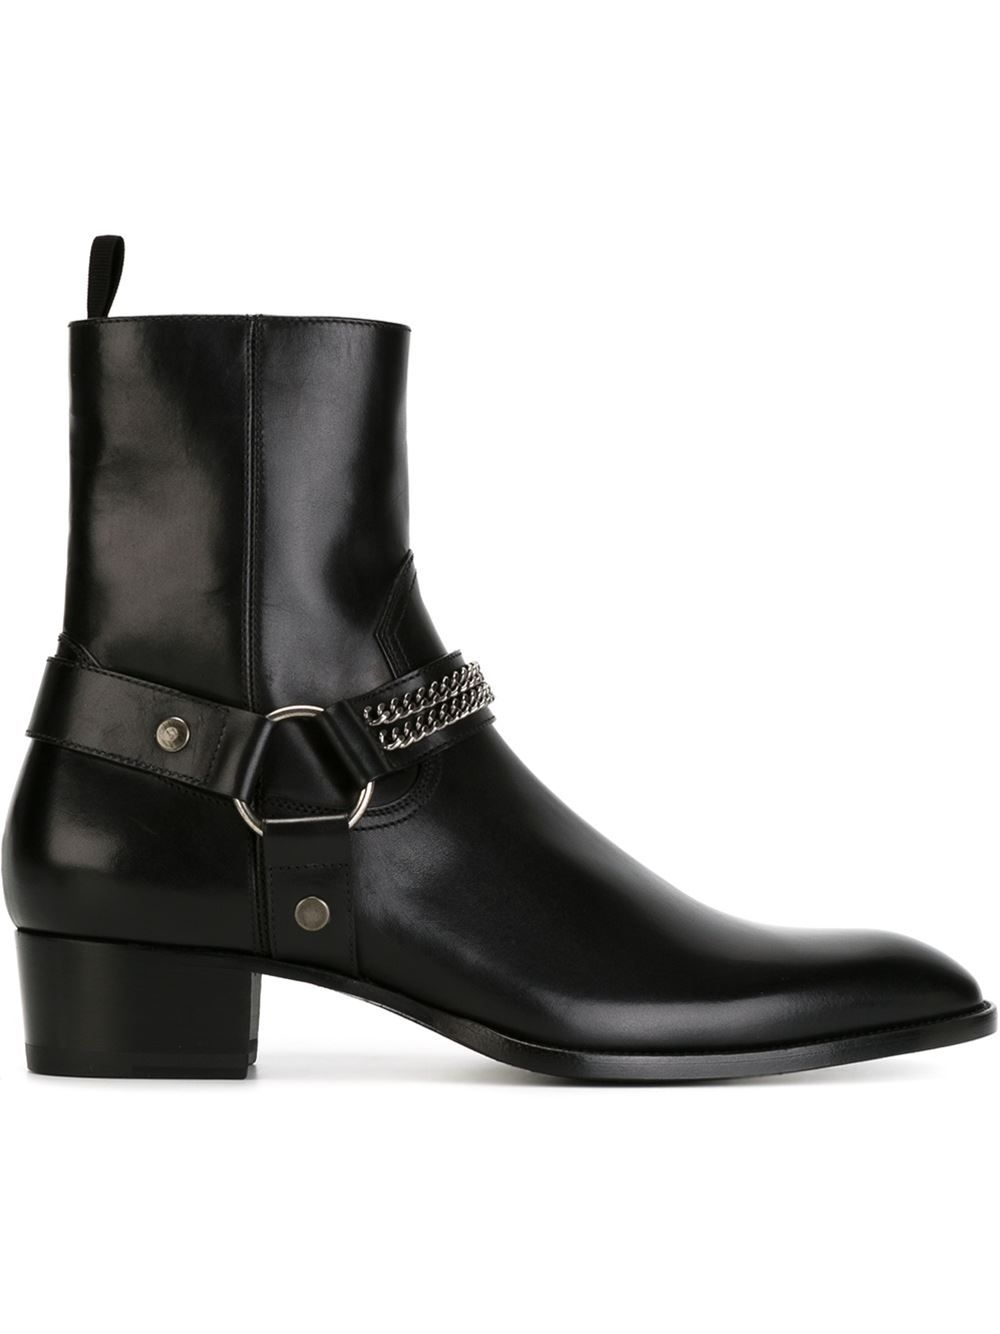 acfe71b10fc Saint Laurent  Wyatt  ankle boots